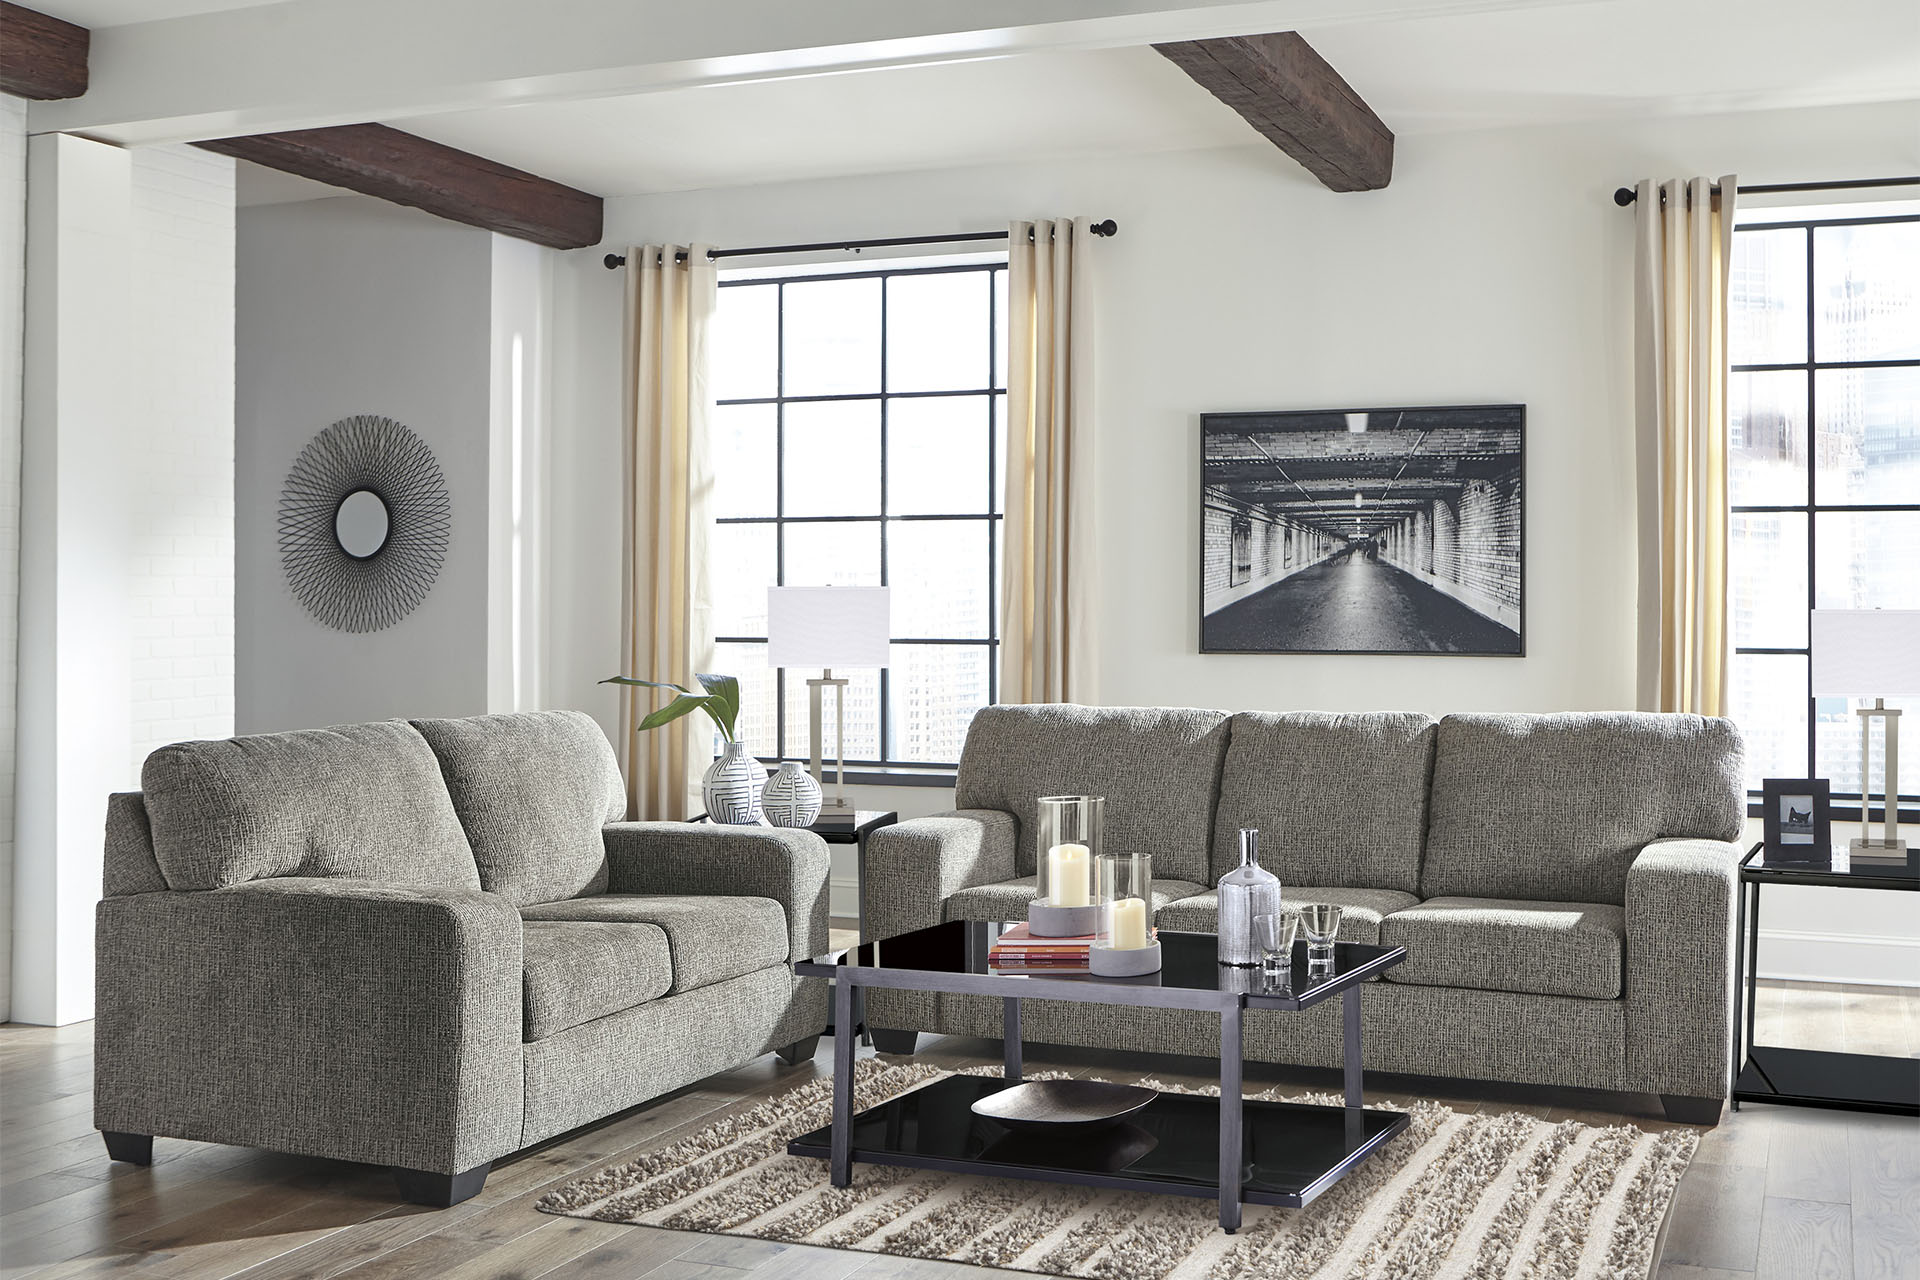 Specials Home Express Furniture We Are Your Trusted Choice For Affordable American Made Furniture As The Largest Furniture Outlet In Reno Nevada